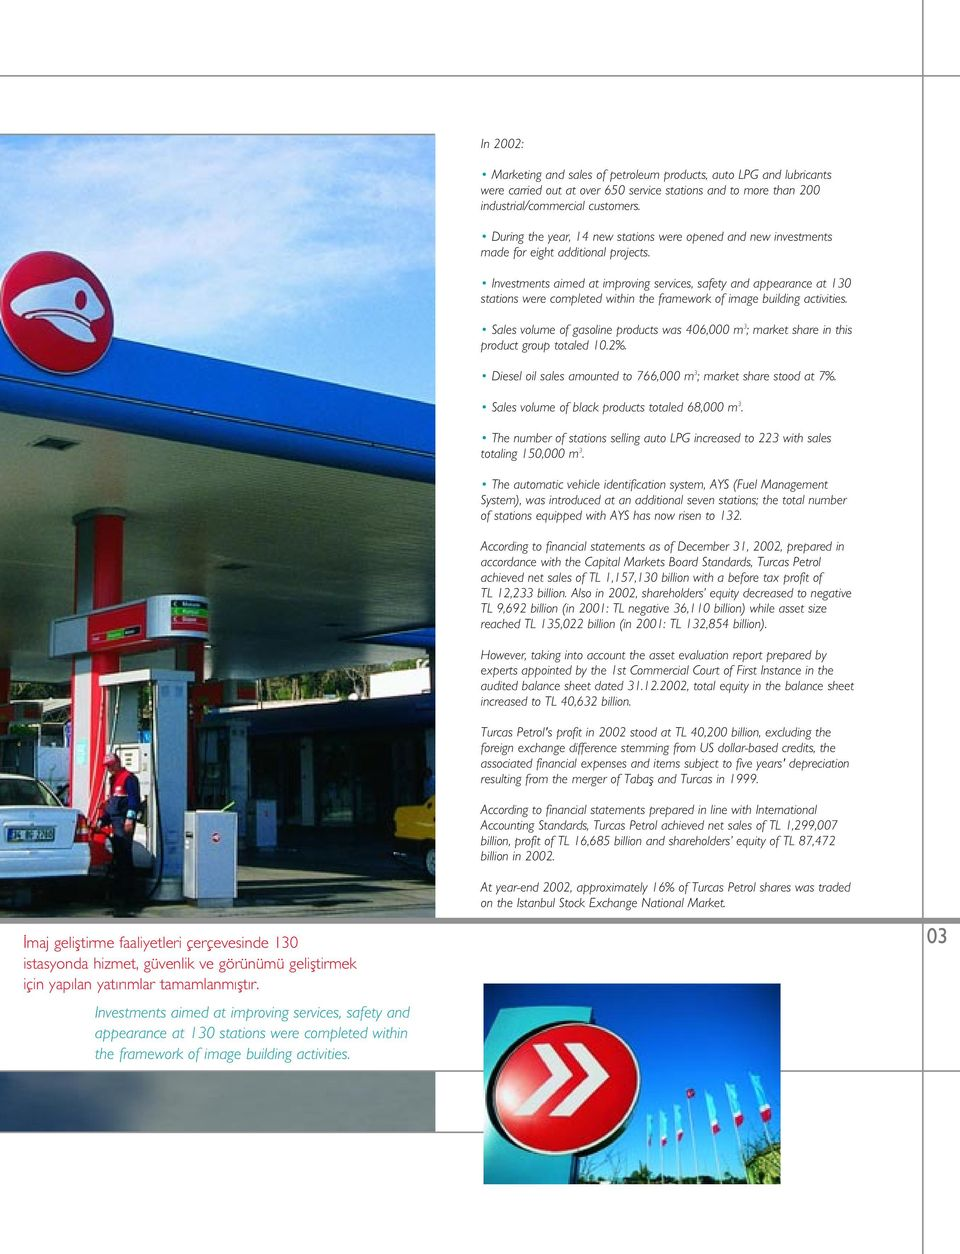 In 2002: Marketing and sales of petroleum products, auto LPG and lubricants were carried out at over 650 service stations and to more than 200 industrial/commercial customers.